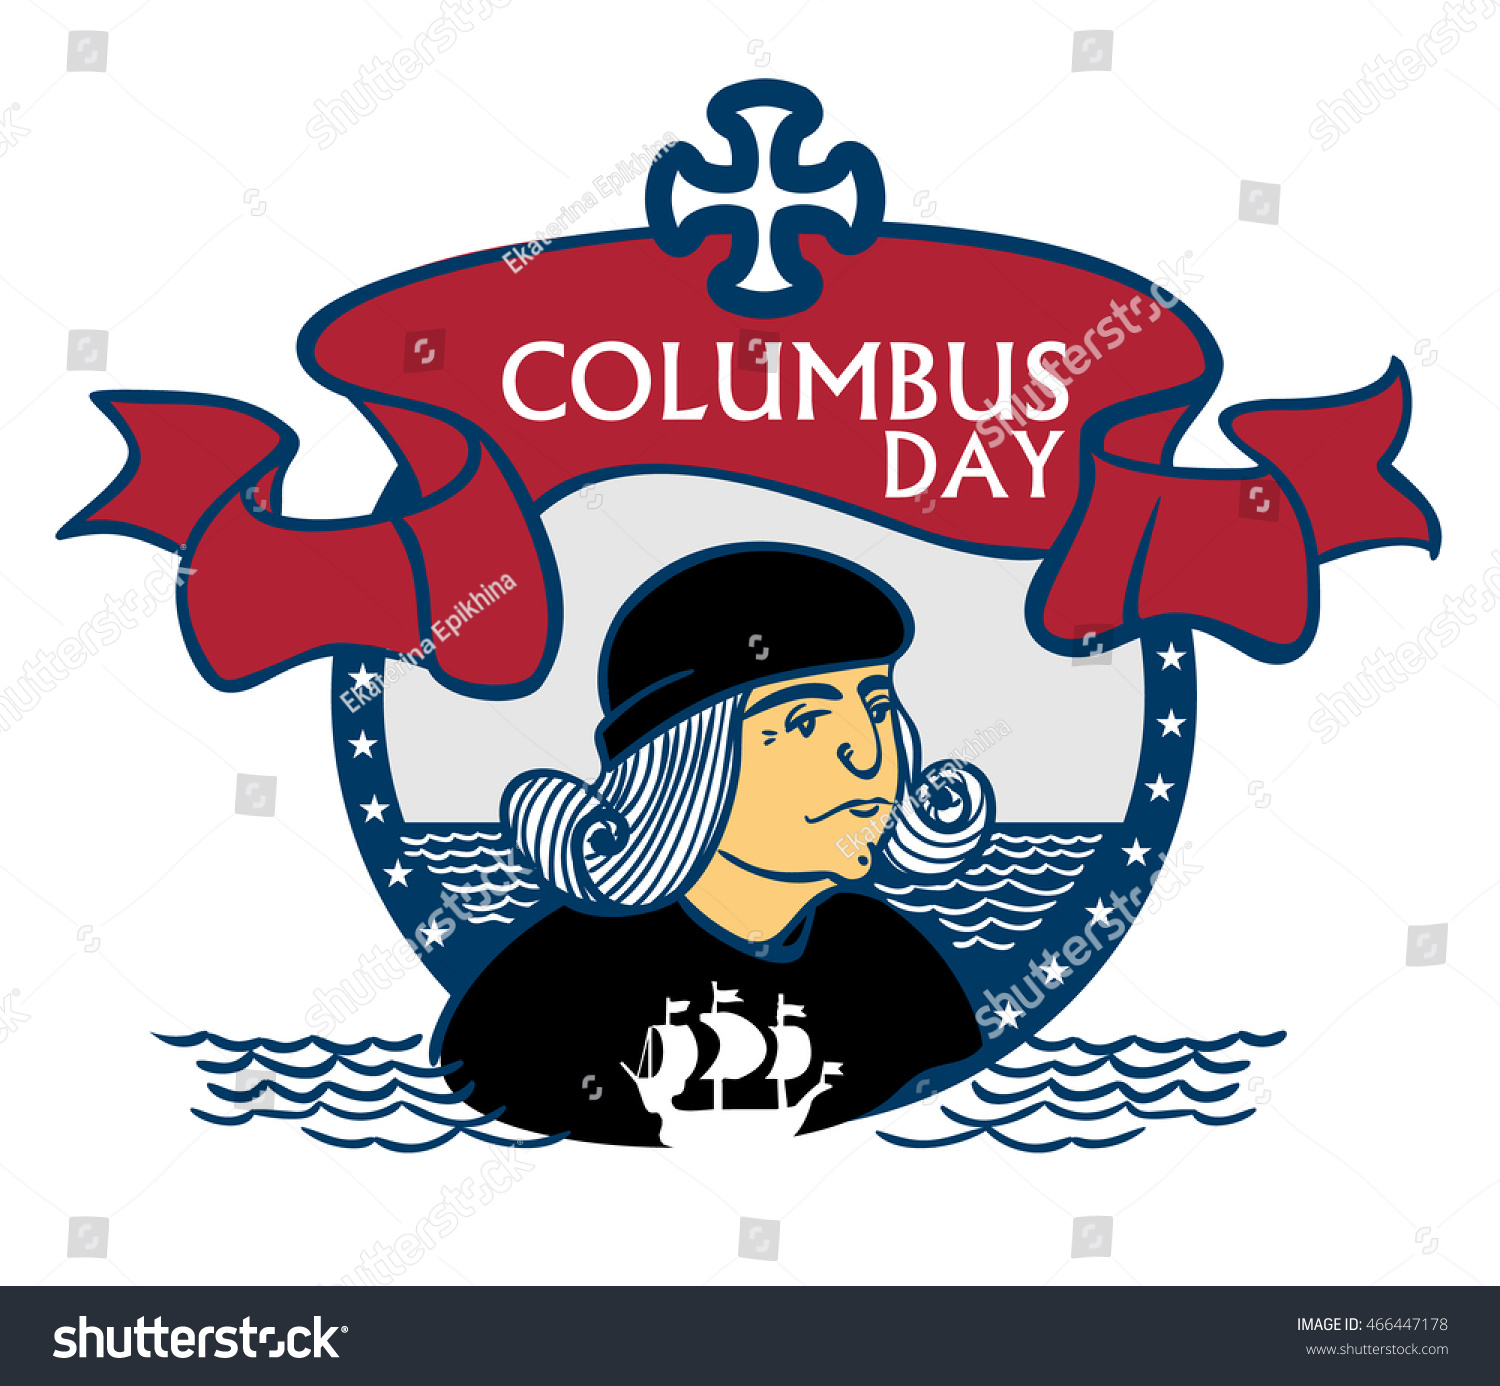 discontinue the celebration of columbus day Denver, where columbus day was first celebrated about 100 years ago, now  permanently recognizes indigenous peoples' day.